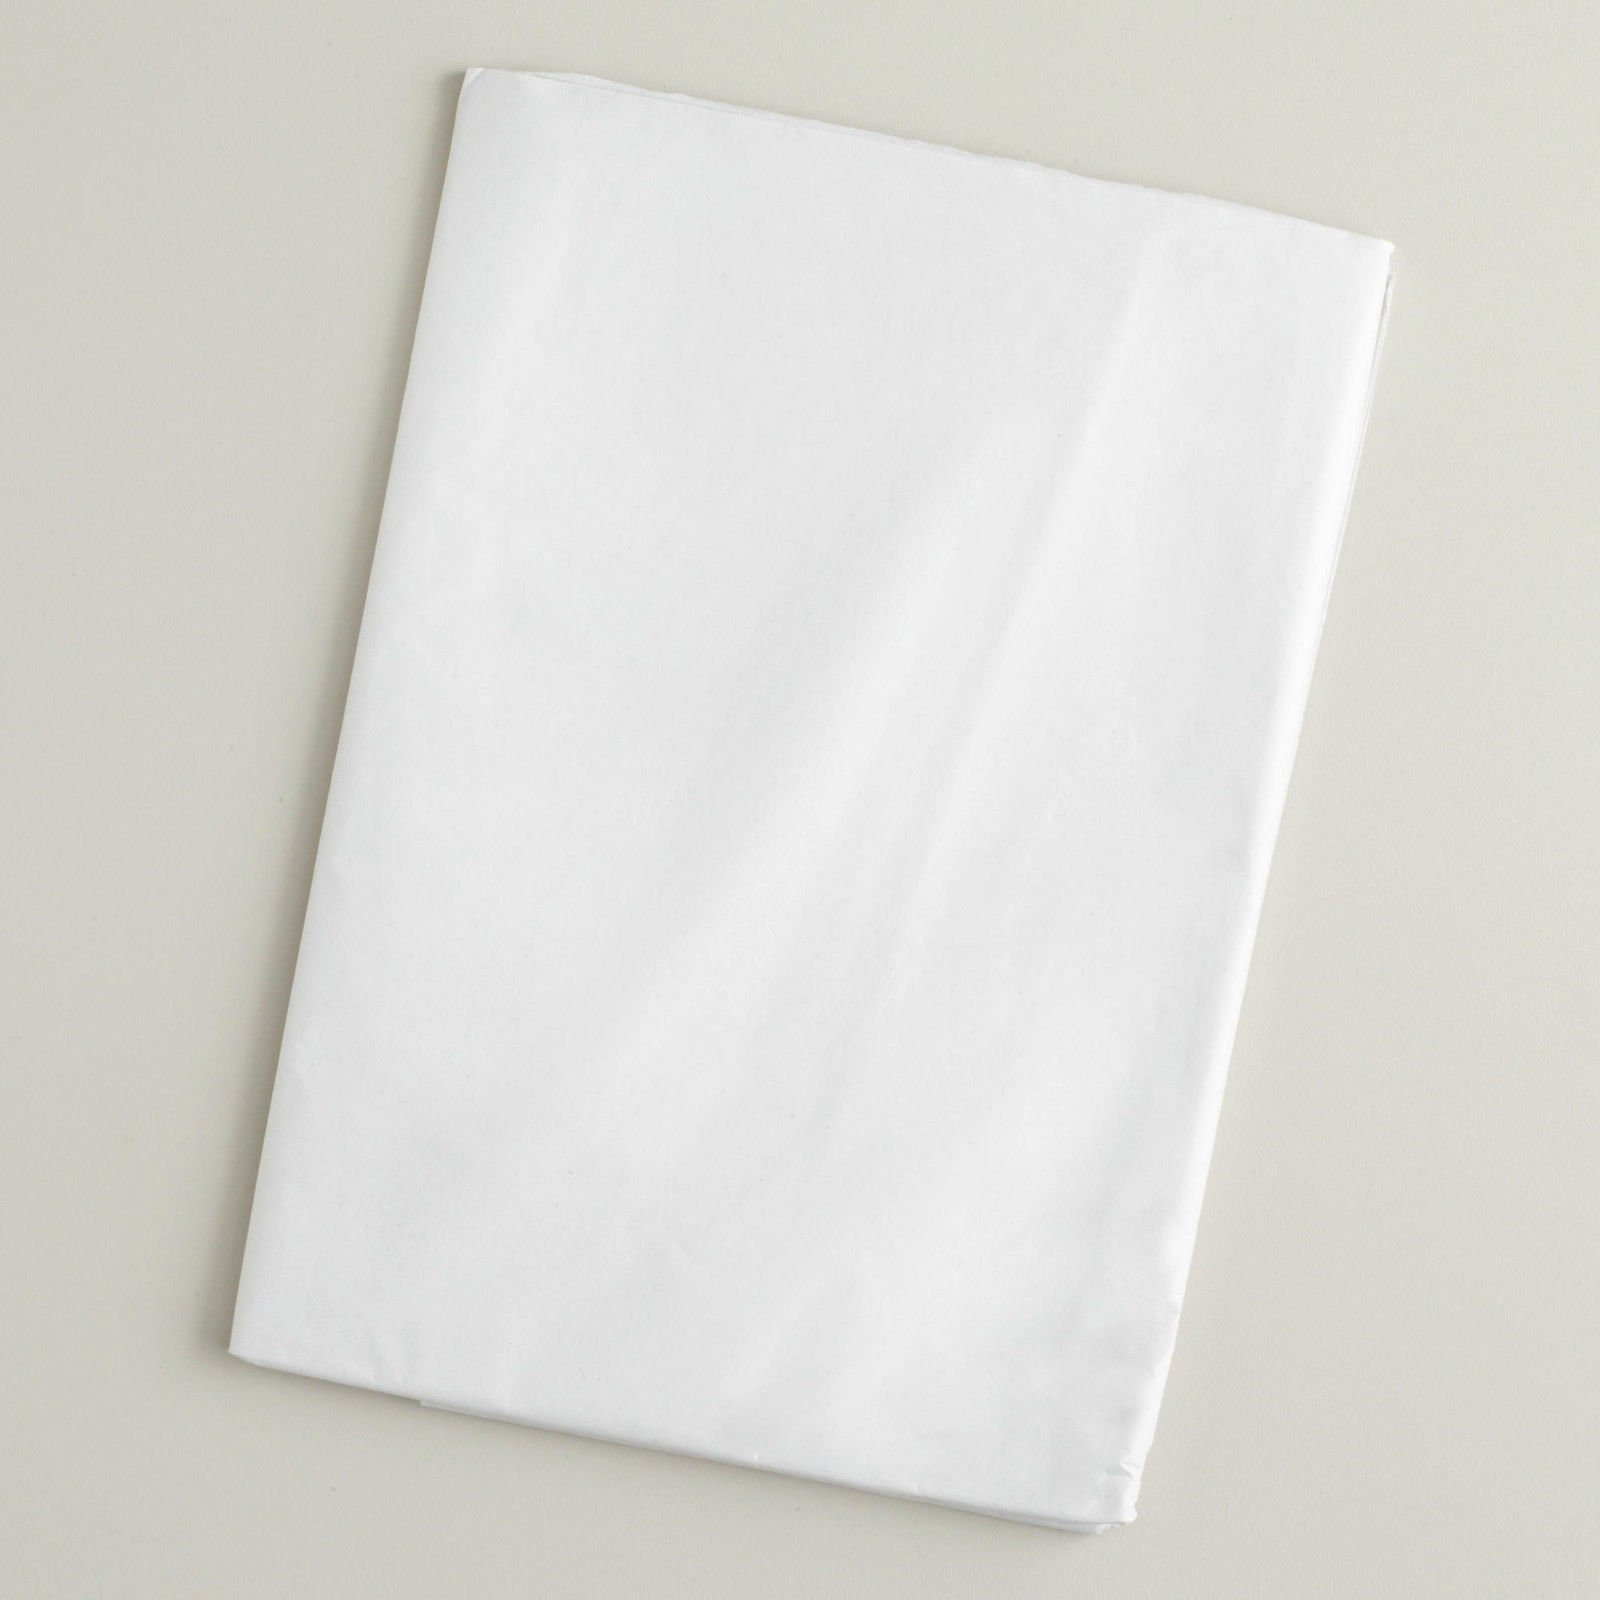 Fabricare Choice - Case Of 17X27 White Premium Tissue Paper 4,800 Sheets